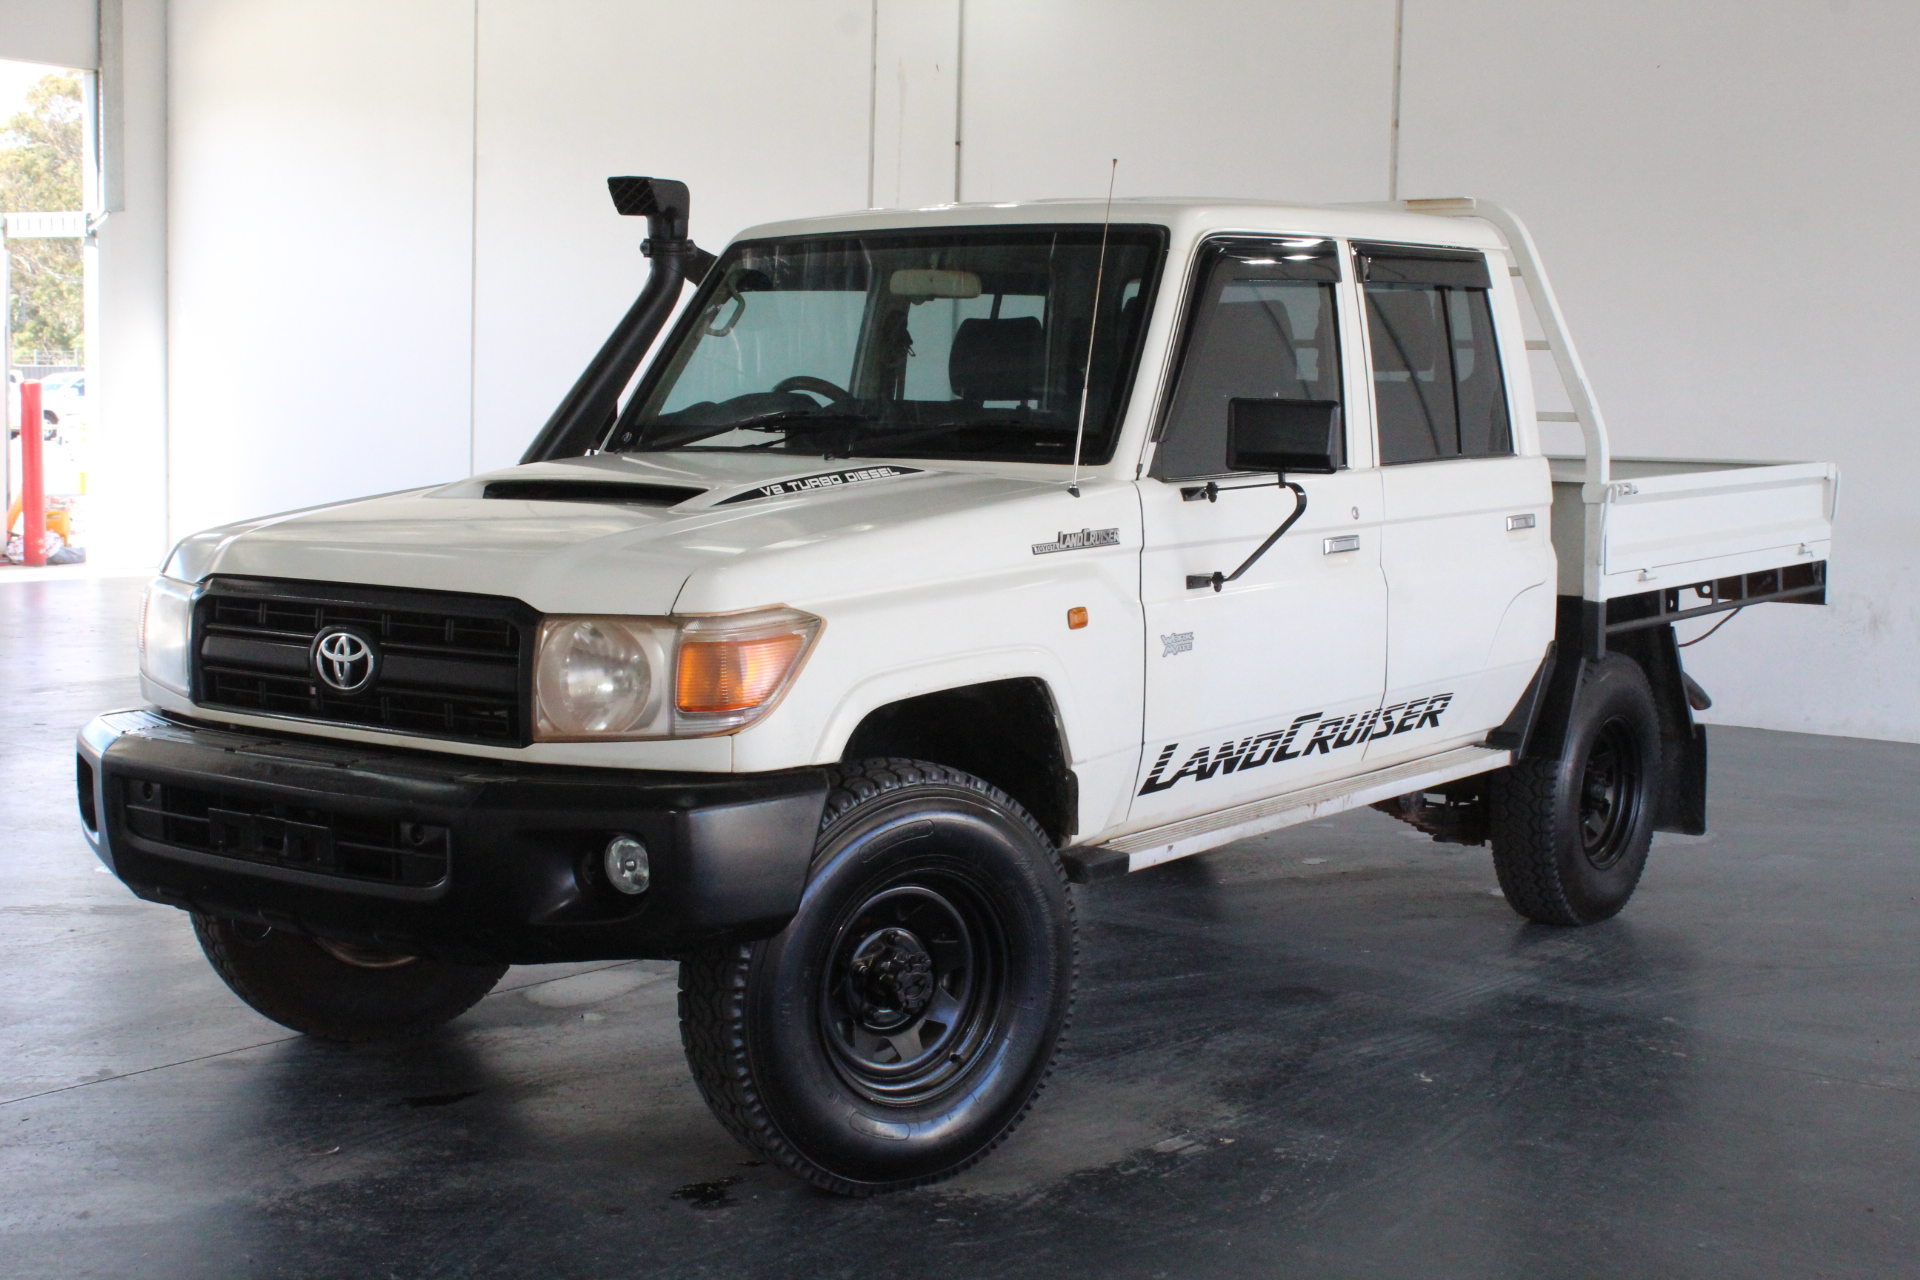 2014 Toyota Landcruiser Workmate (4x4) VDJ79R T/Diesel Mnl Crew Cab Chassis